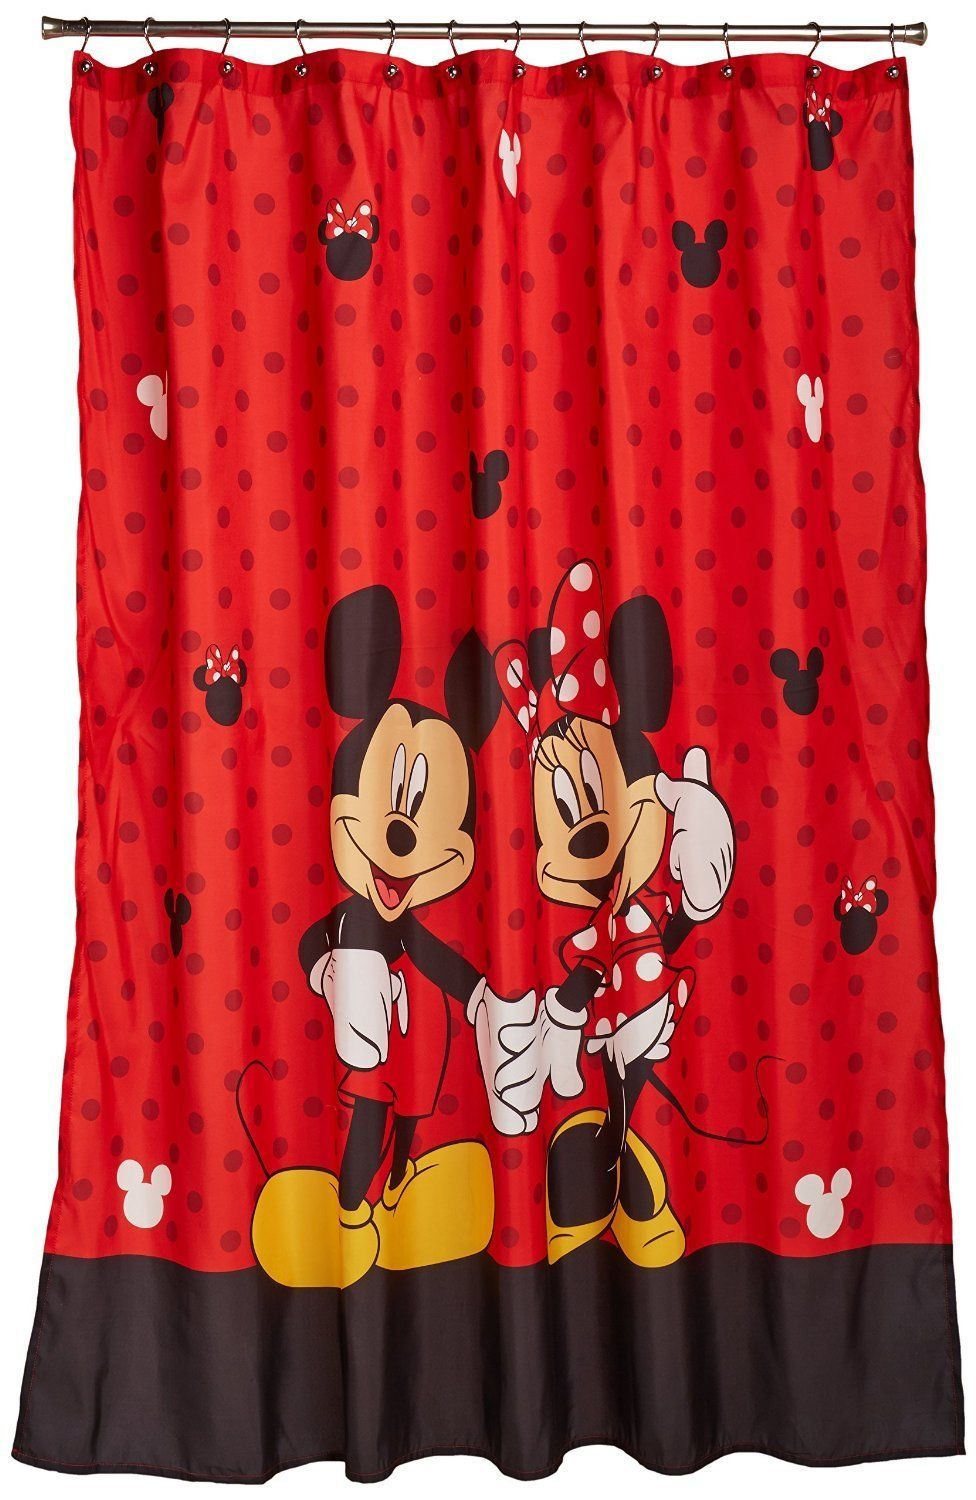 Mickey minnie mouse fabric shower curtain bathroom fun for Fabrics for children s curtains